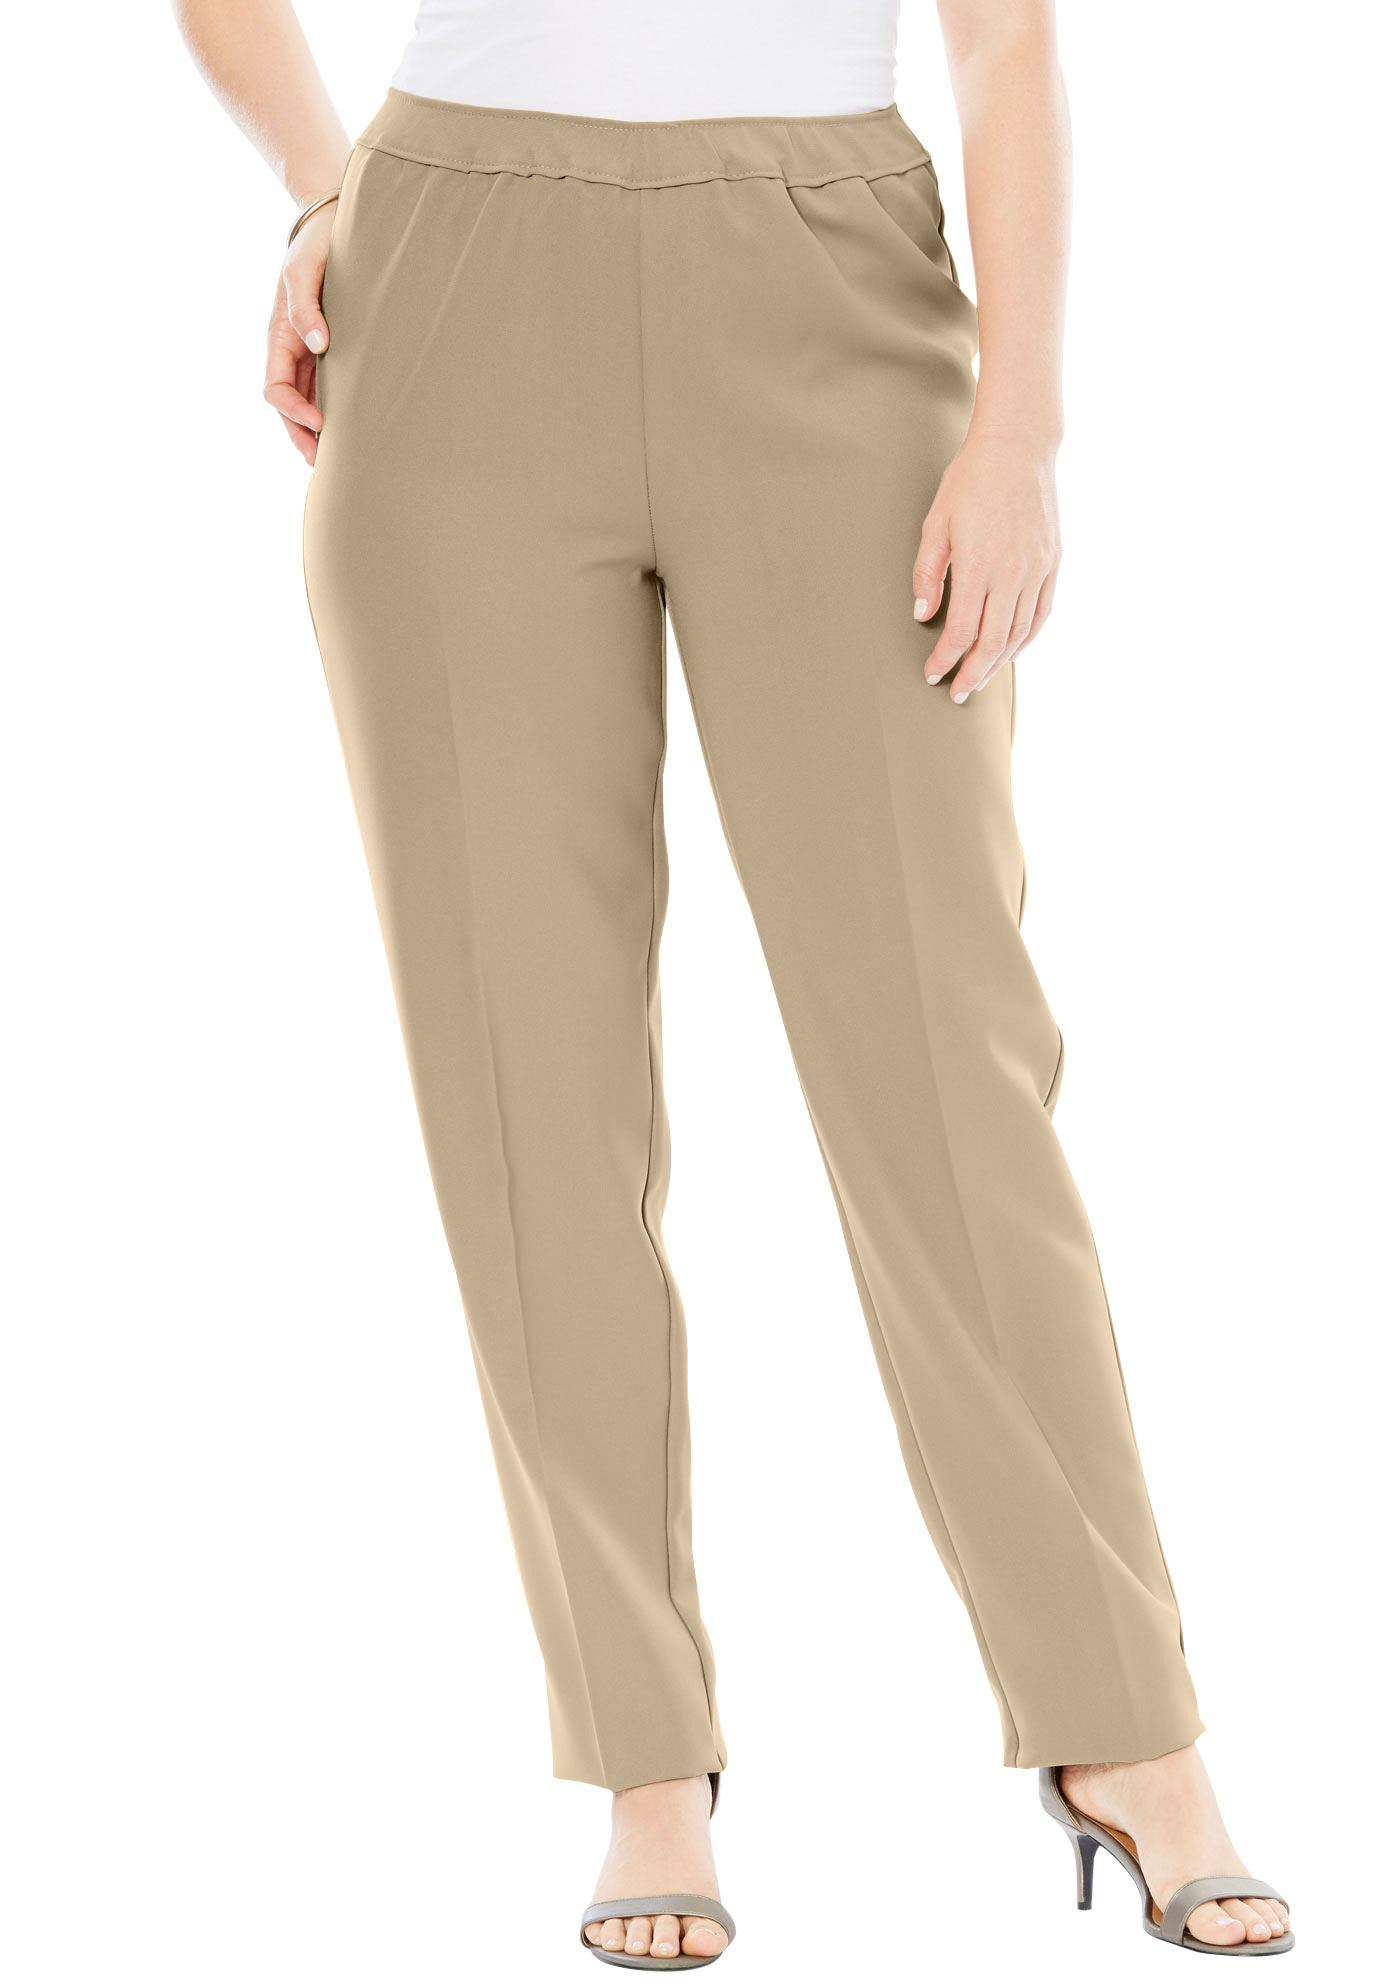 Roamans Plus Size Petite Bend Over Classic Pant